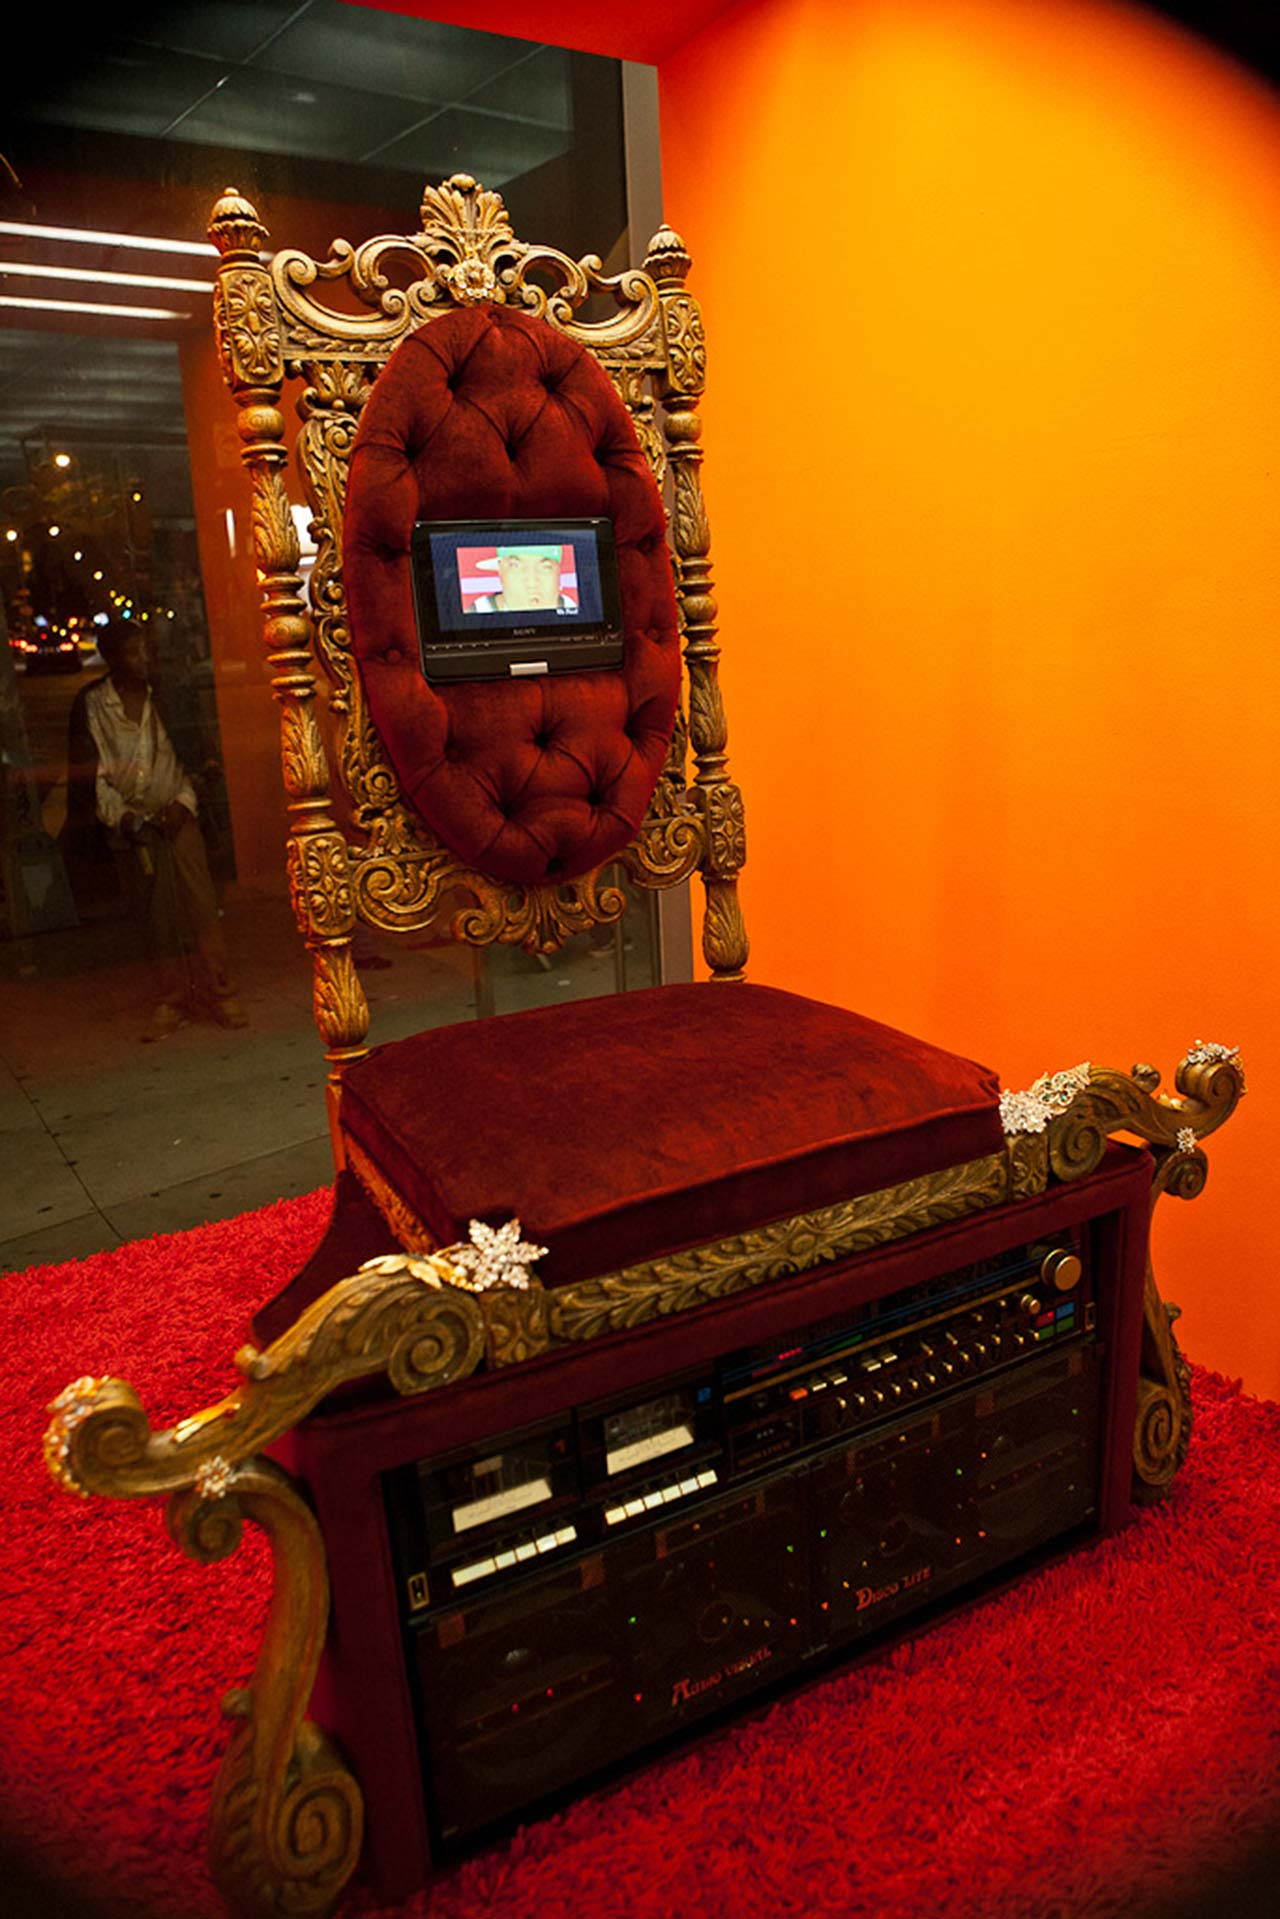 Untitled (Throne)